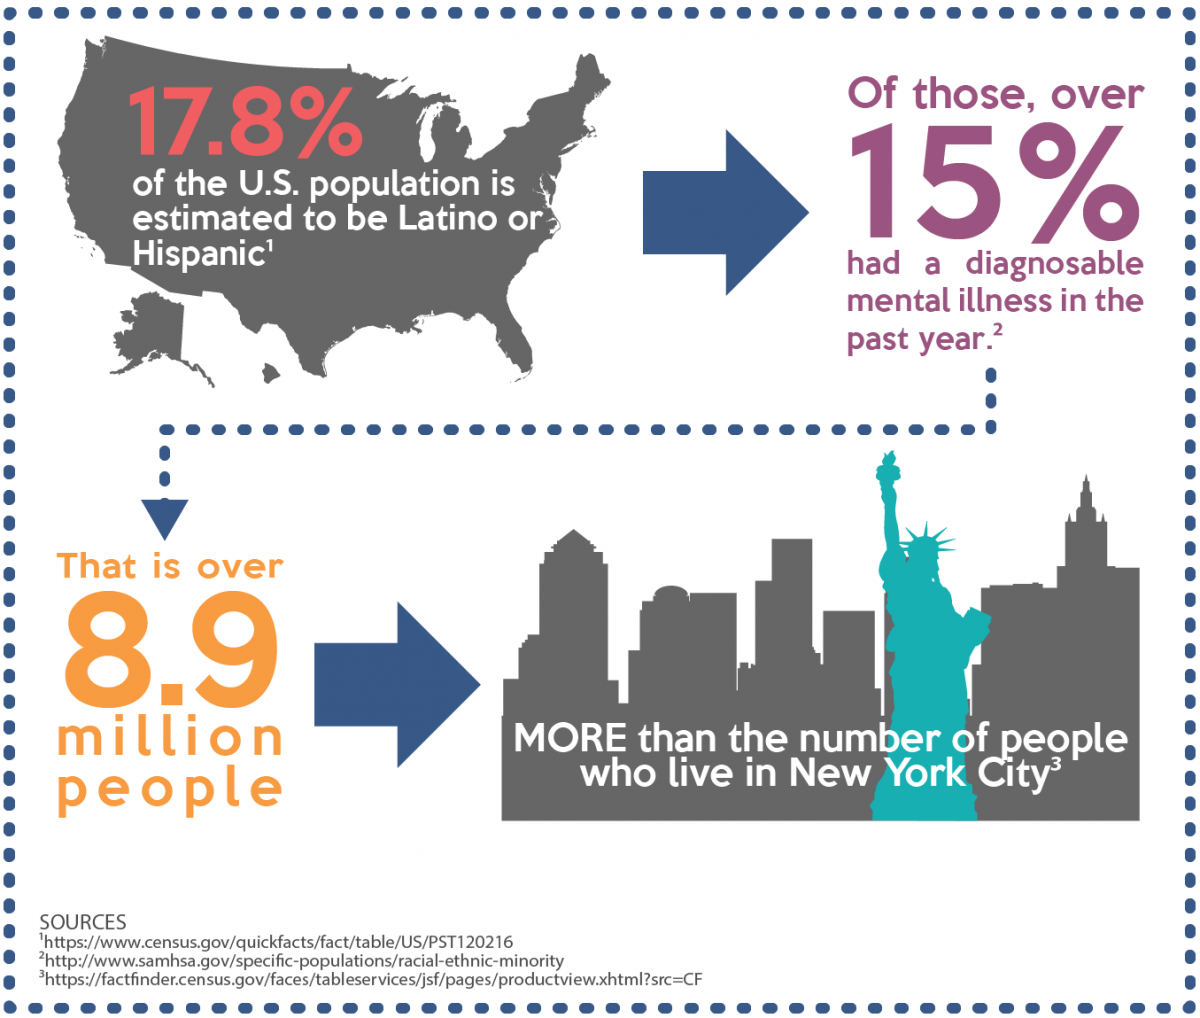 Prevalence of Mental Health Issues Among Latino/Hispanic Americans Infographic